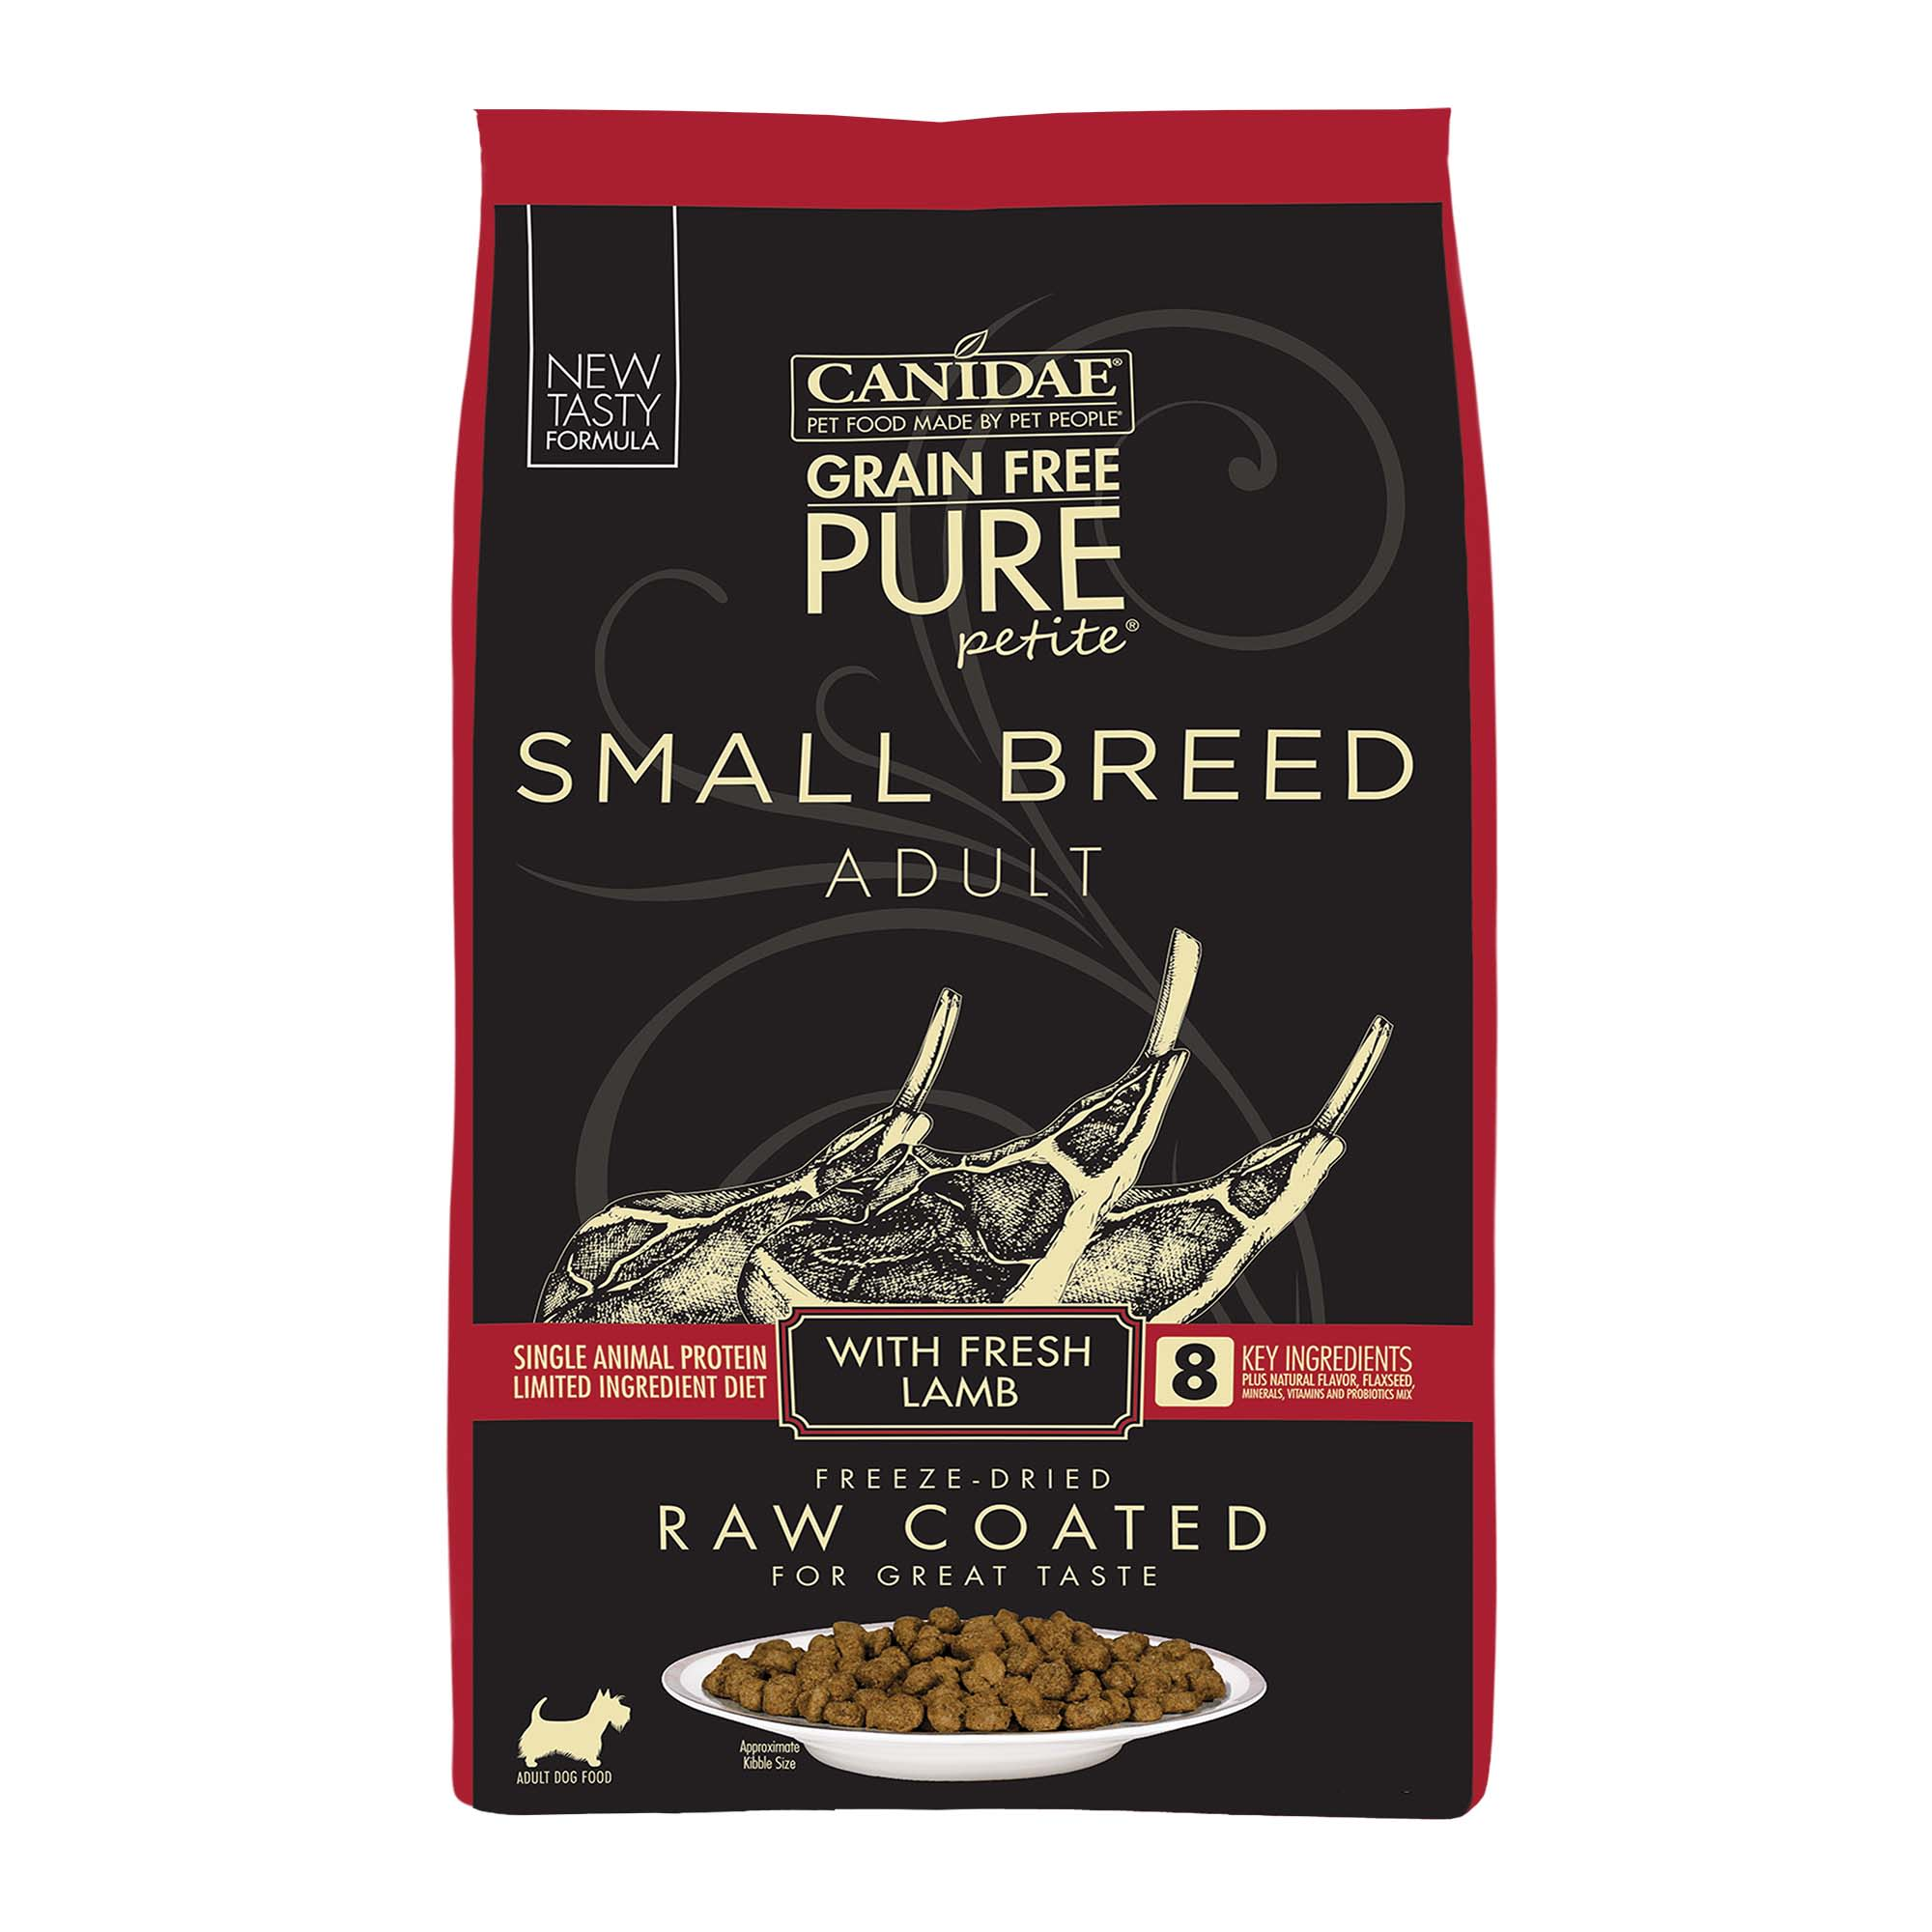 Canidae PURE Grain Free Petite Small Breed Limited Ingredient Diet with Fresh Lamb Freeze Dried Raw Coated Dry Dog Food